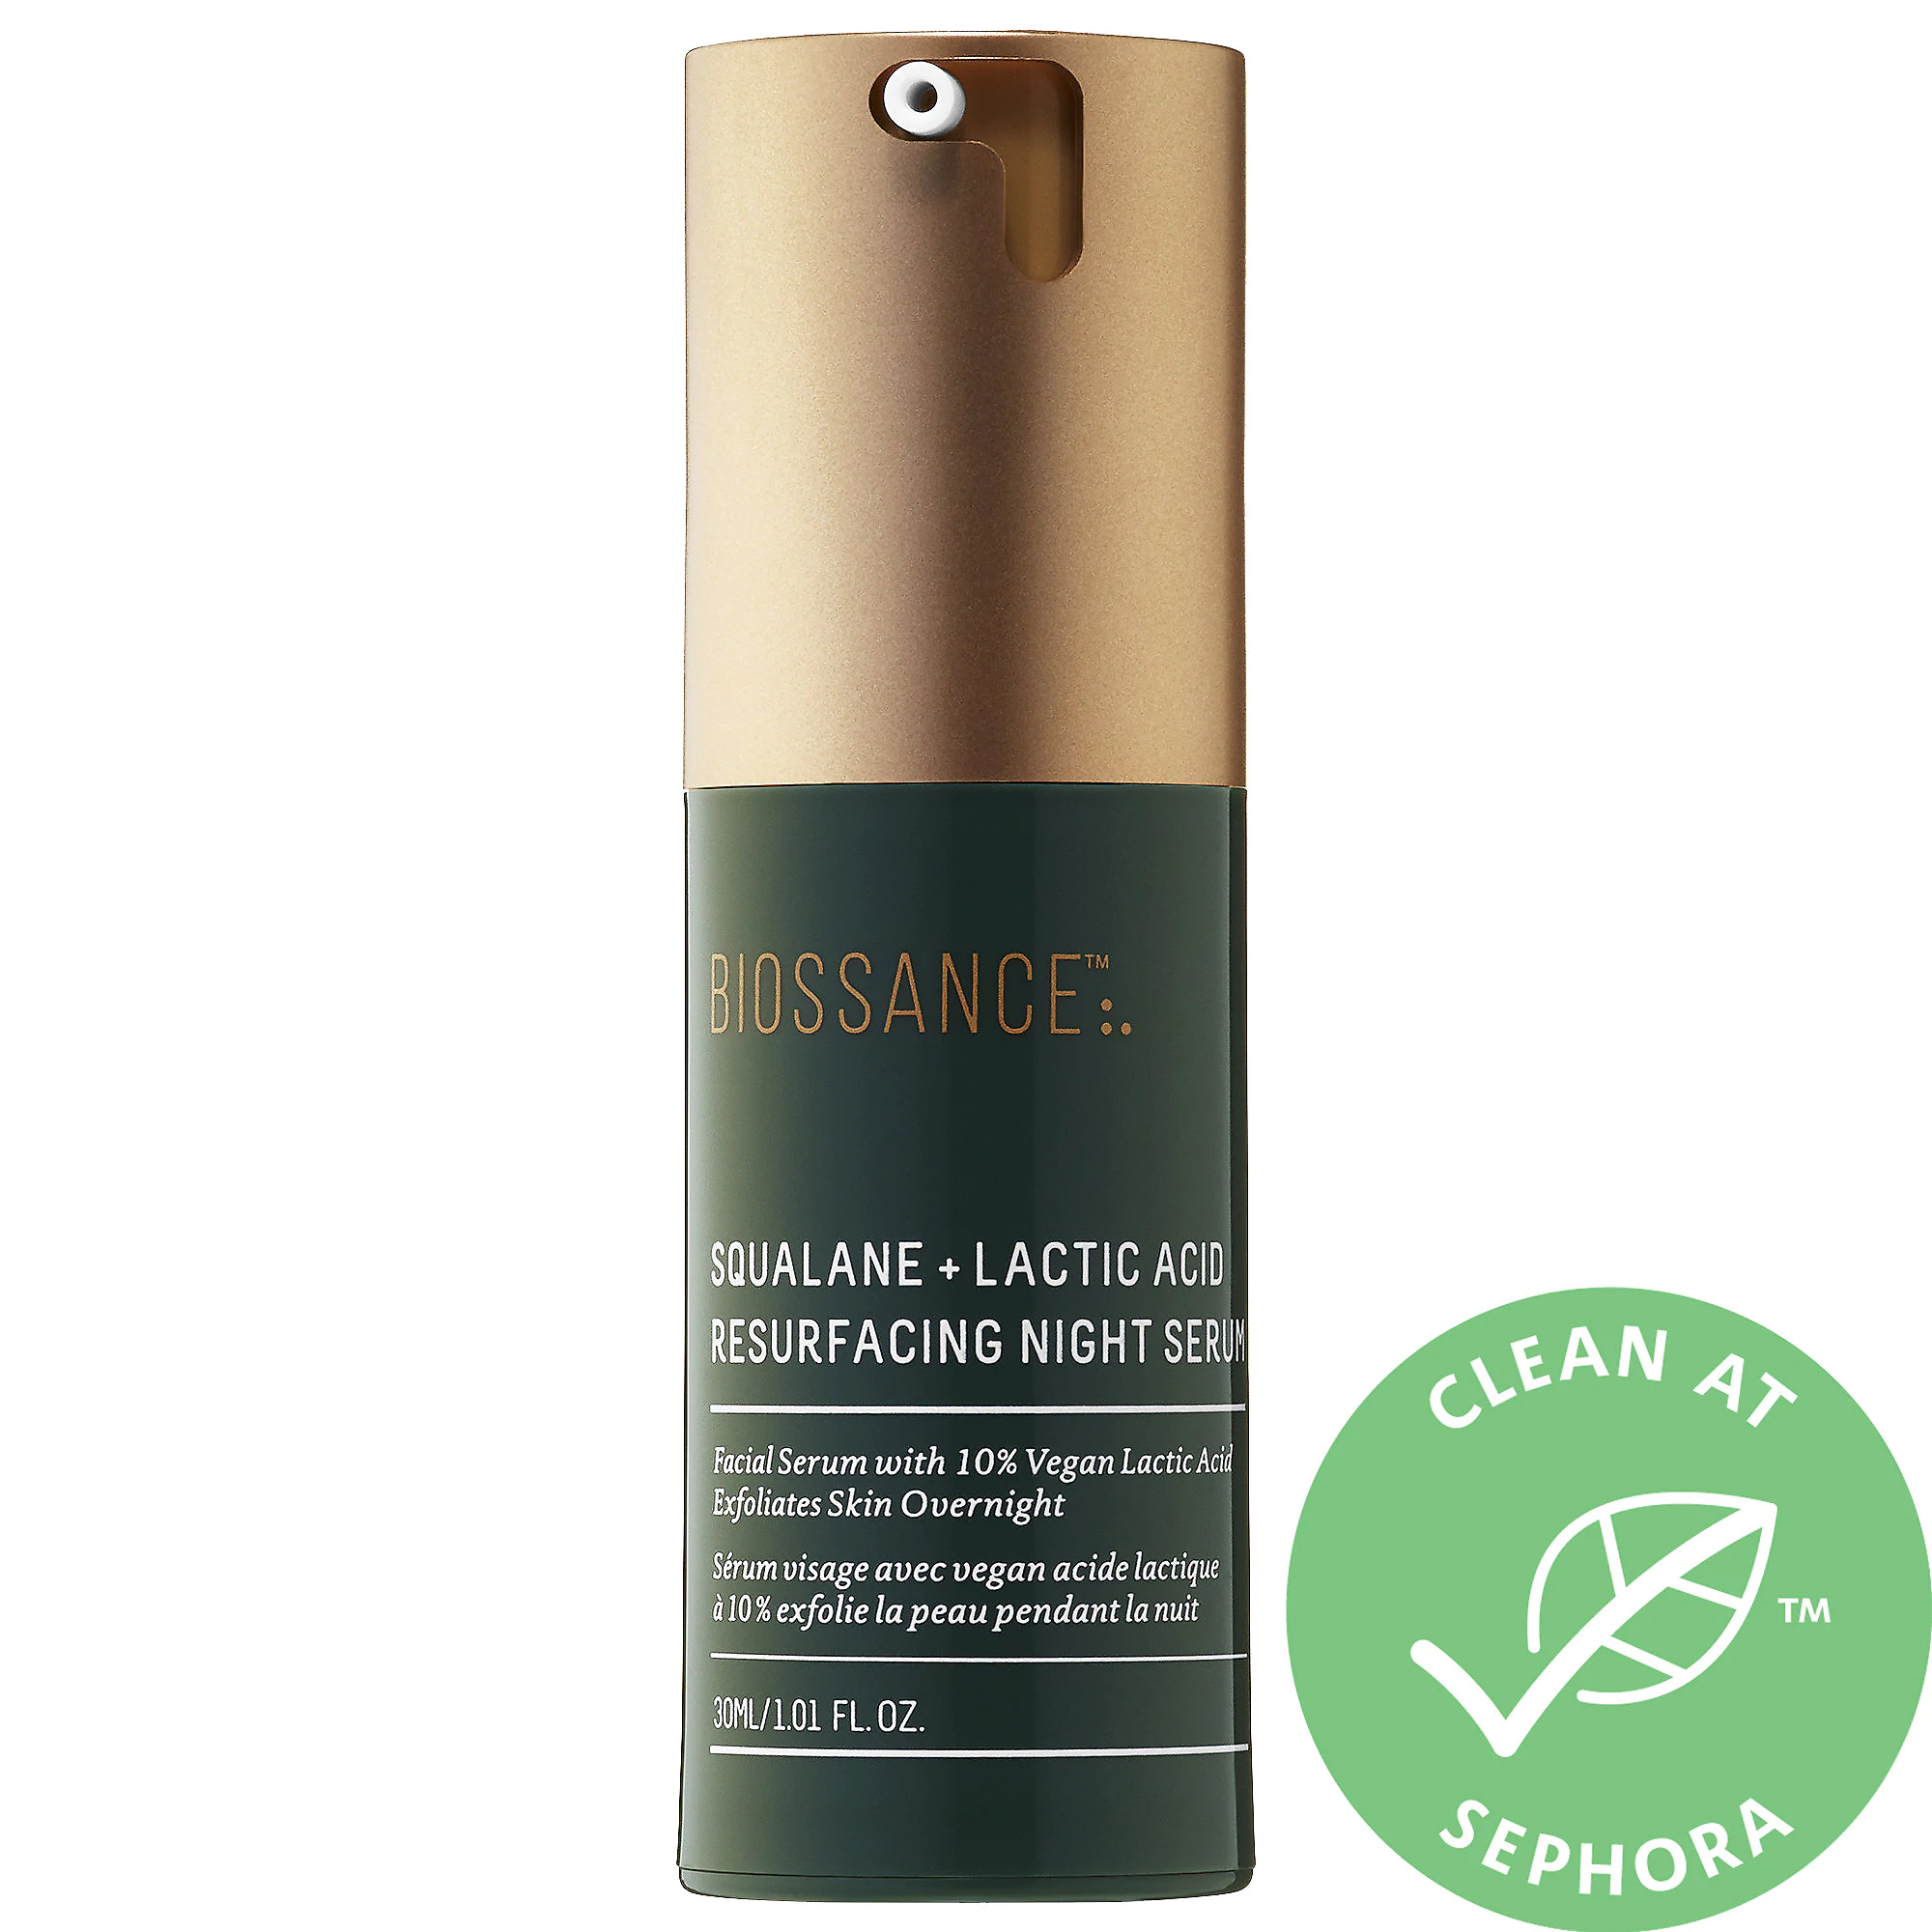 Biossance-Squalane + 10% Lactic Acid Resurfacing Night Serum